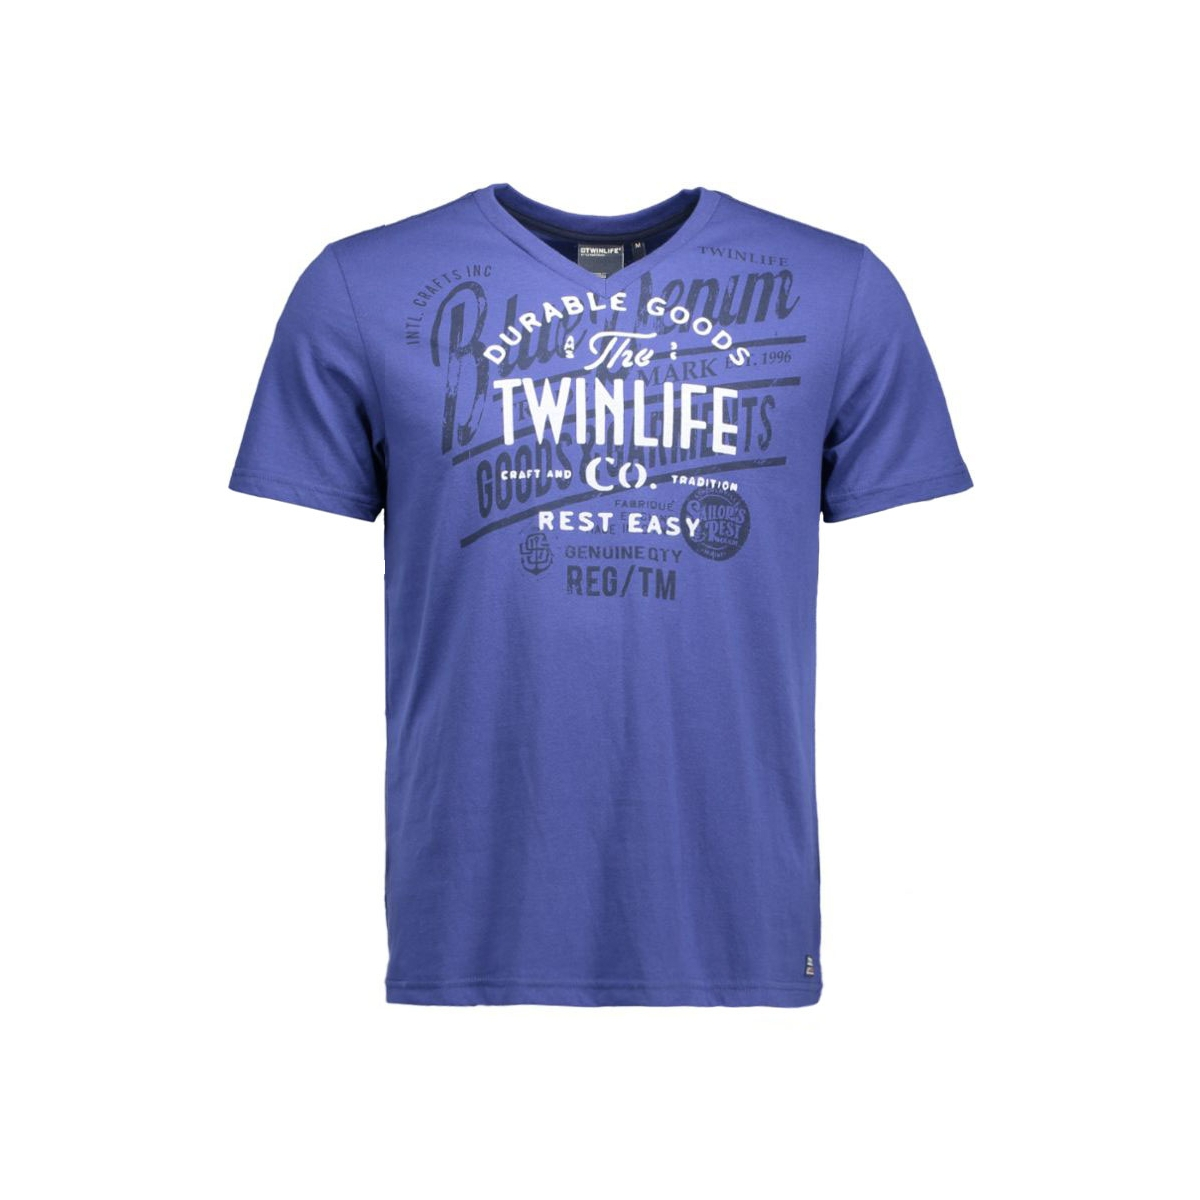 mts611548 twinlife t-shirt 6553